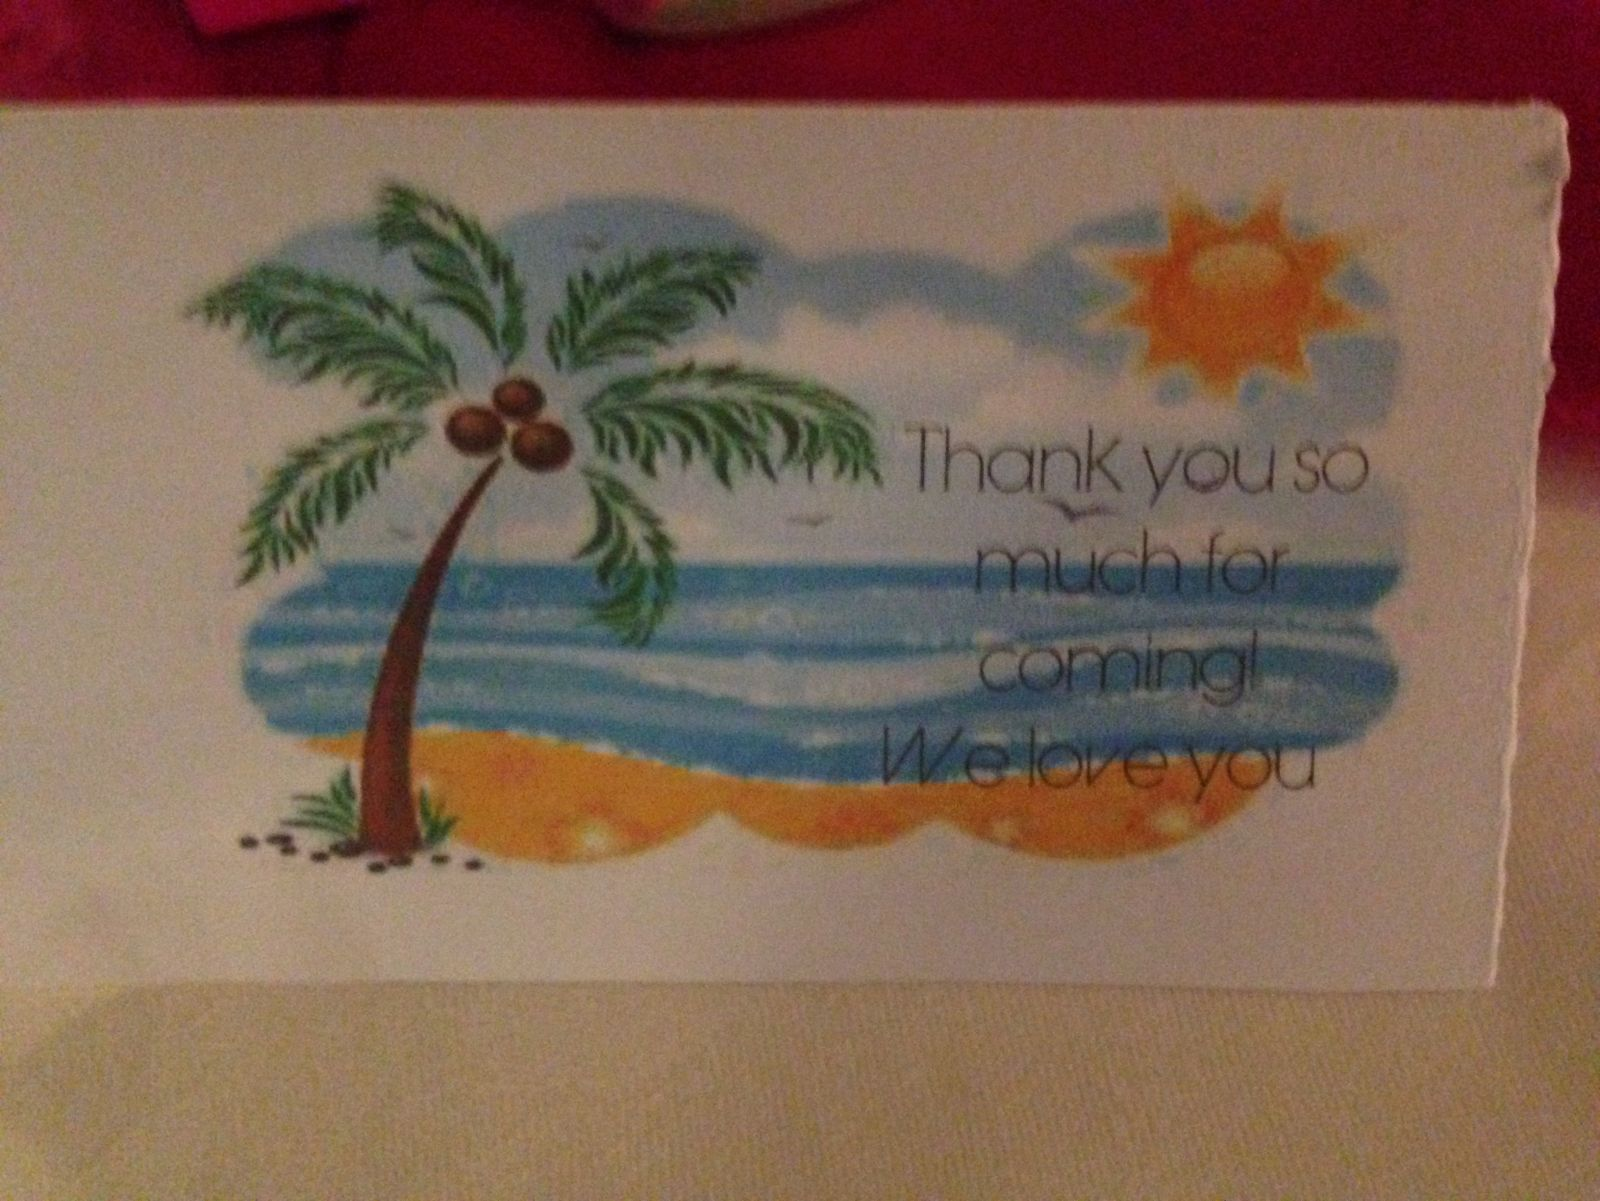 Side 2 Of Tent tag